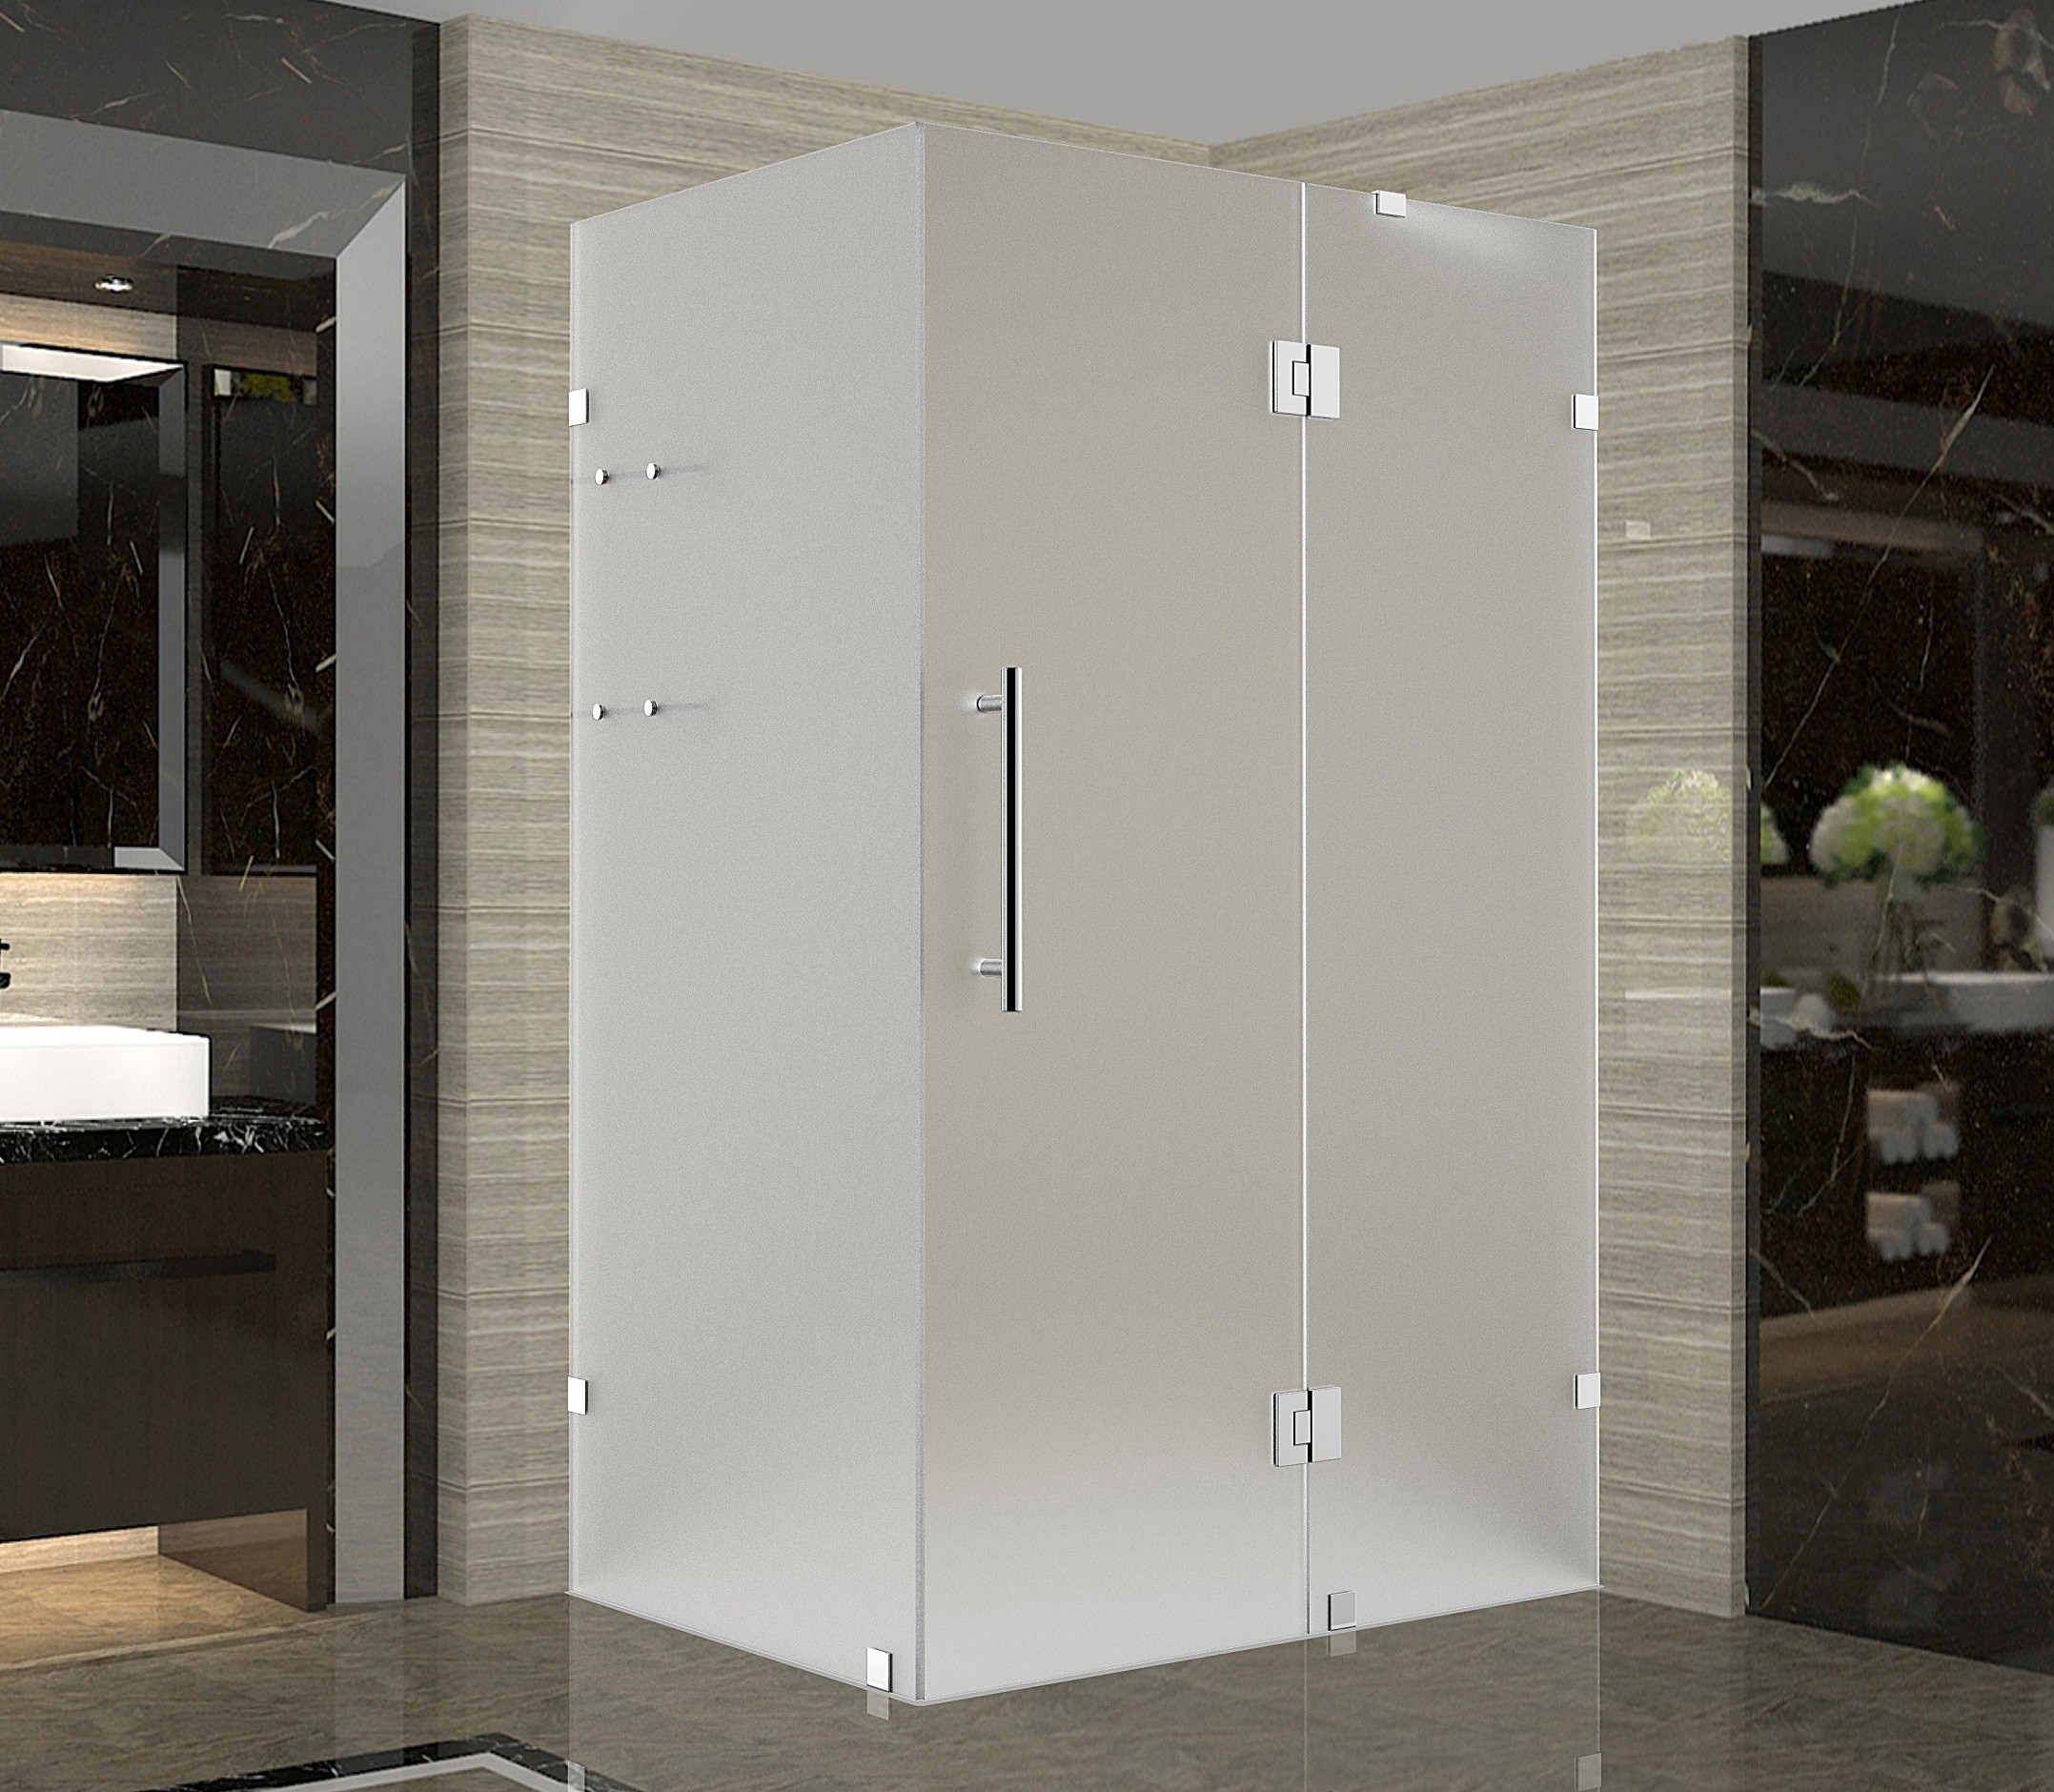 Aston Global SEN992F-CH-3234-10 Chrome Completely Frameless Frosted Shower Enclosure with Shelves